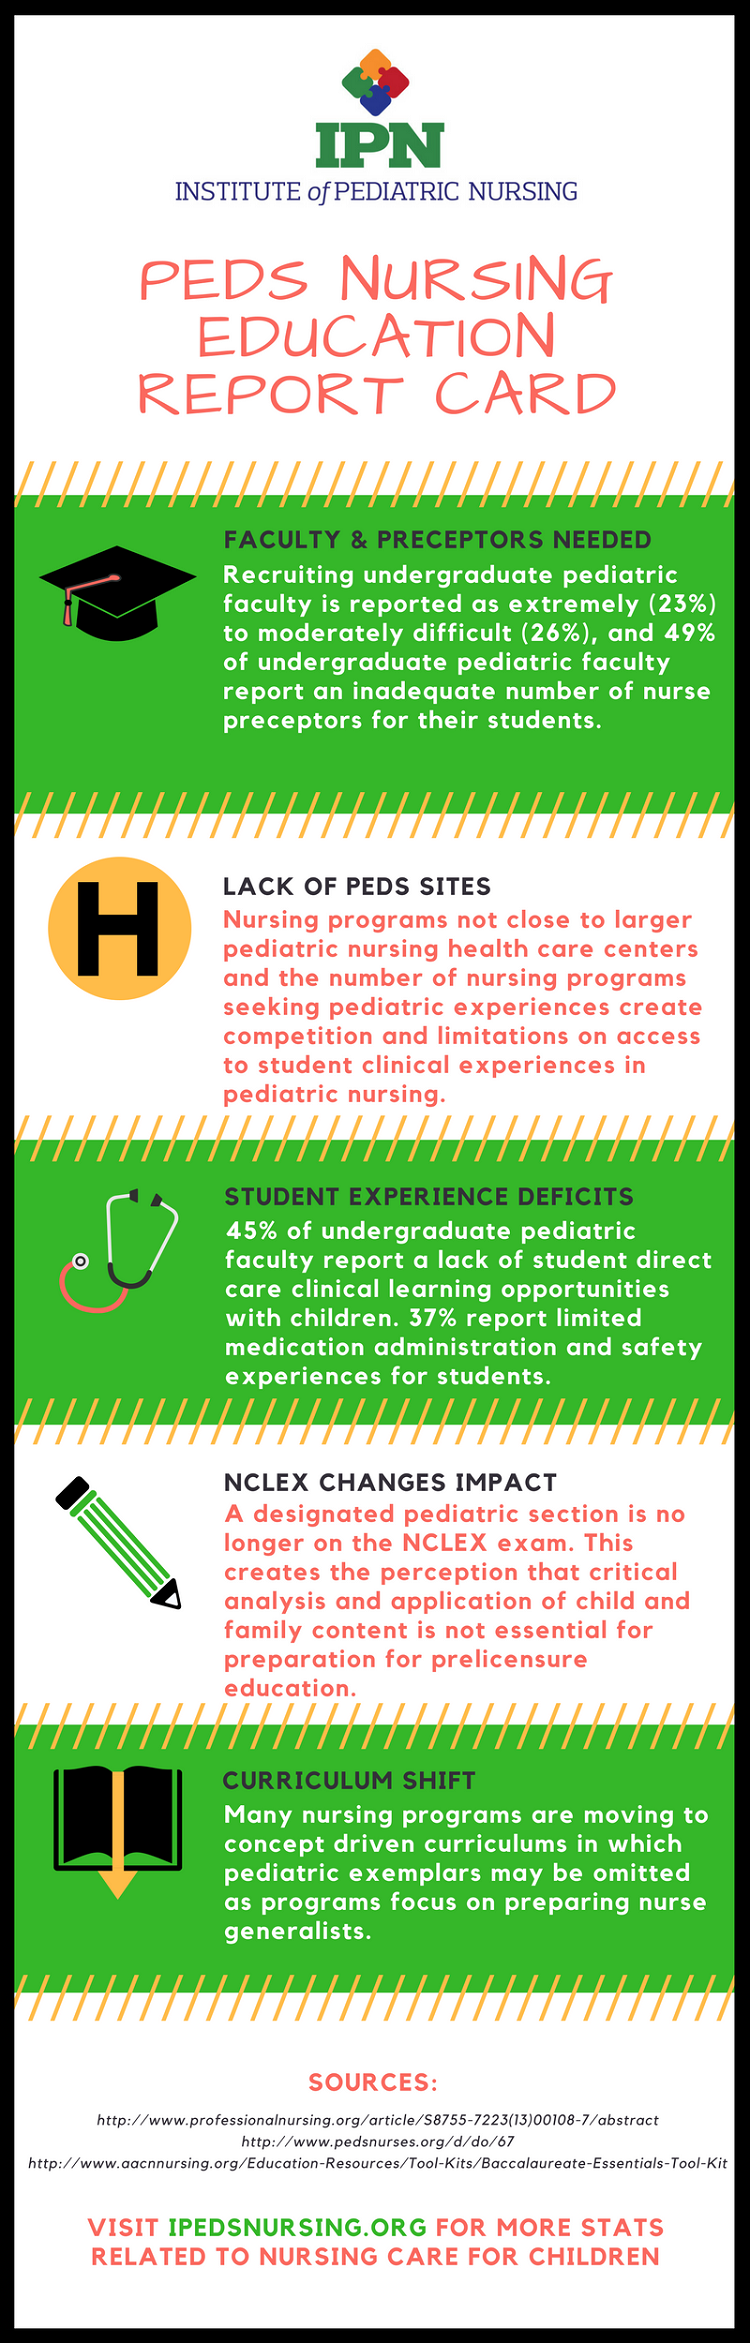 Pediatric Nursing Education Trends